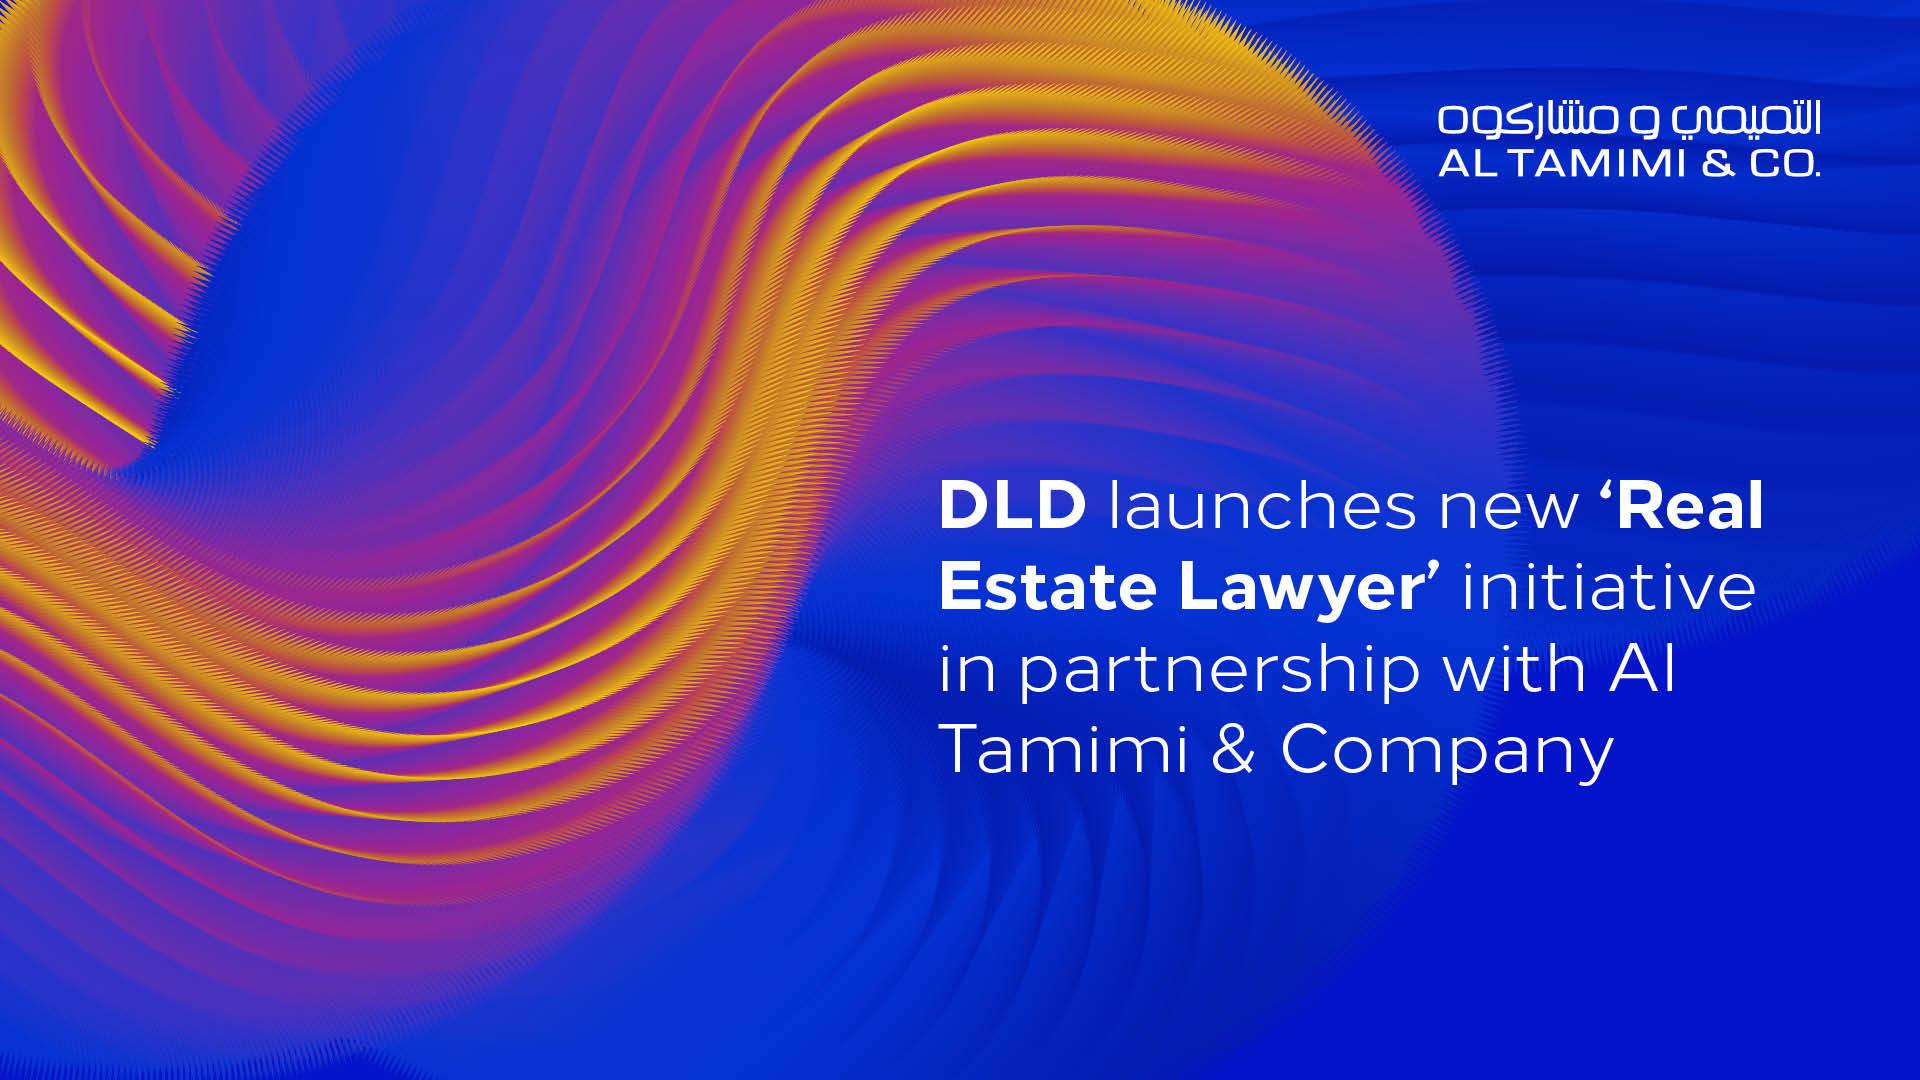 DLD launches new 'Real Estate Lawyer' initiative in partnership with Al Tamimi & Company